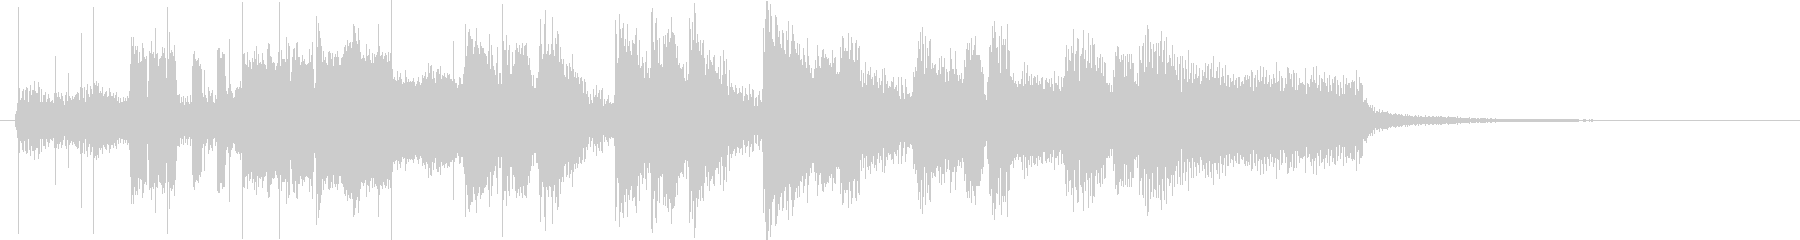 Funny cowboy, short song's unreproduced waveform